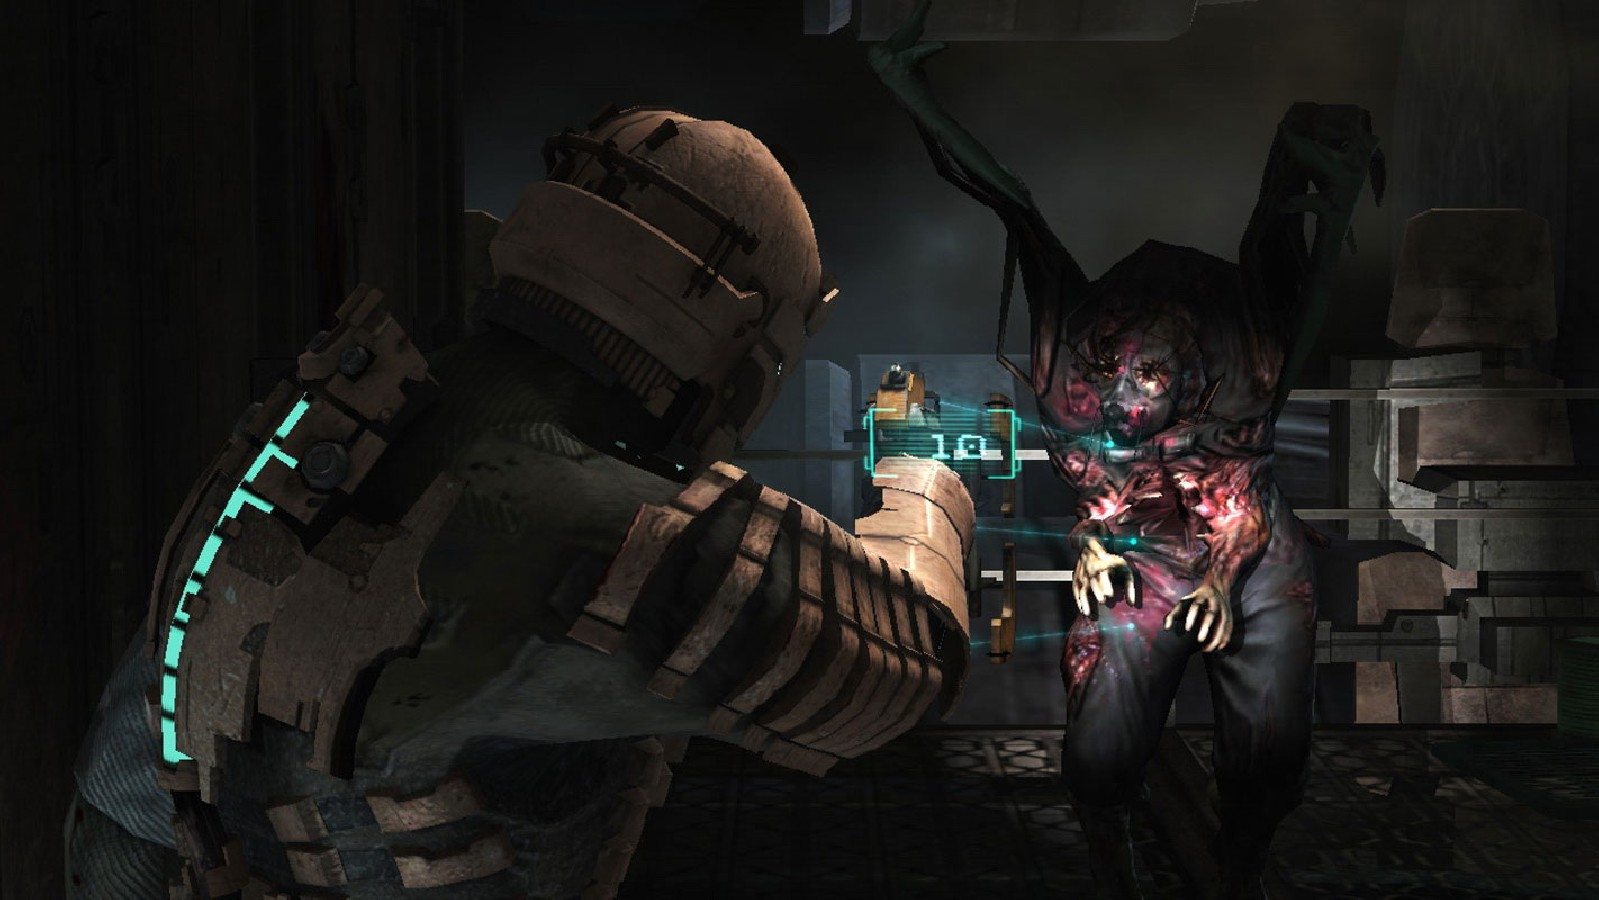 dead space pic 1